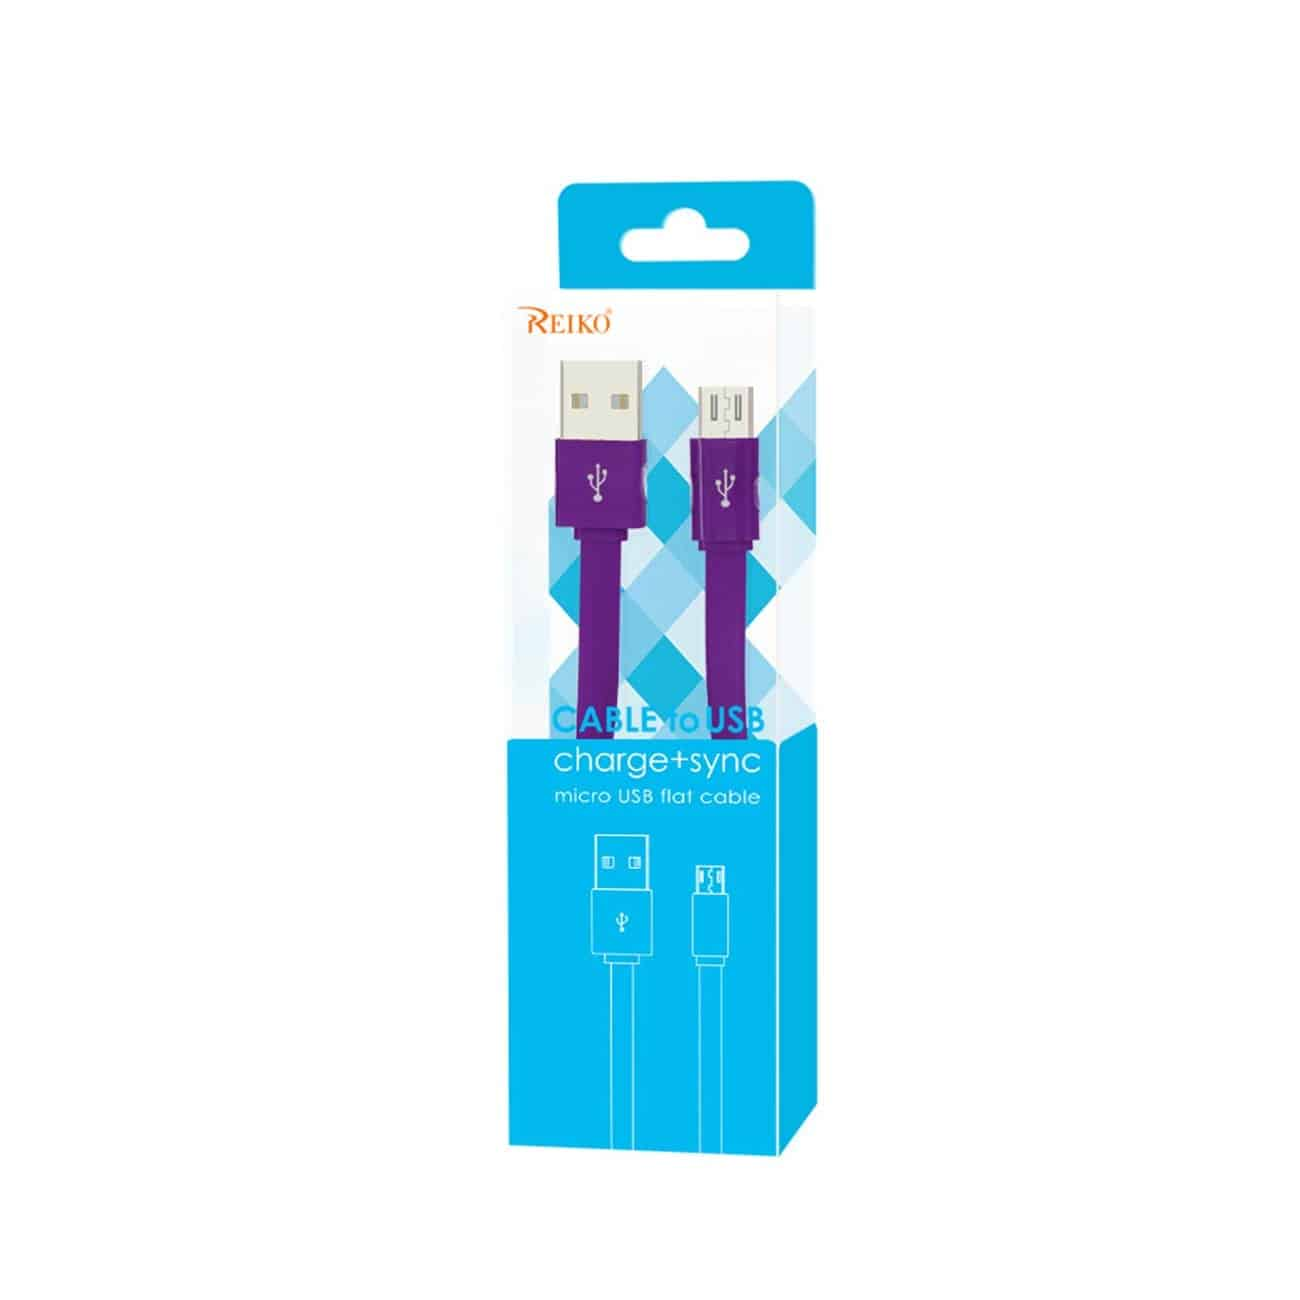 FLAT MICRO USB DATA CABLE 3.2FT IN PURPLE